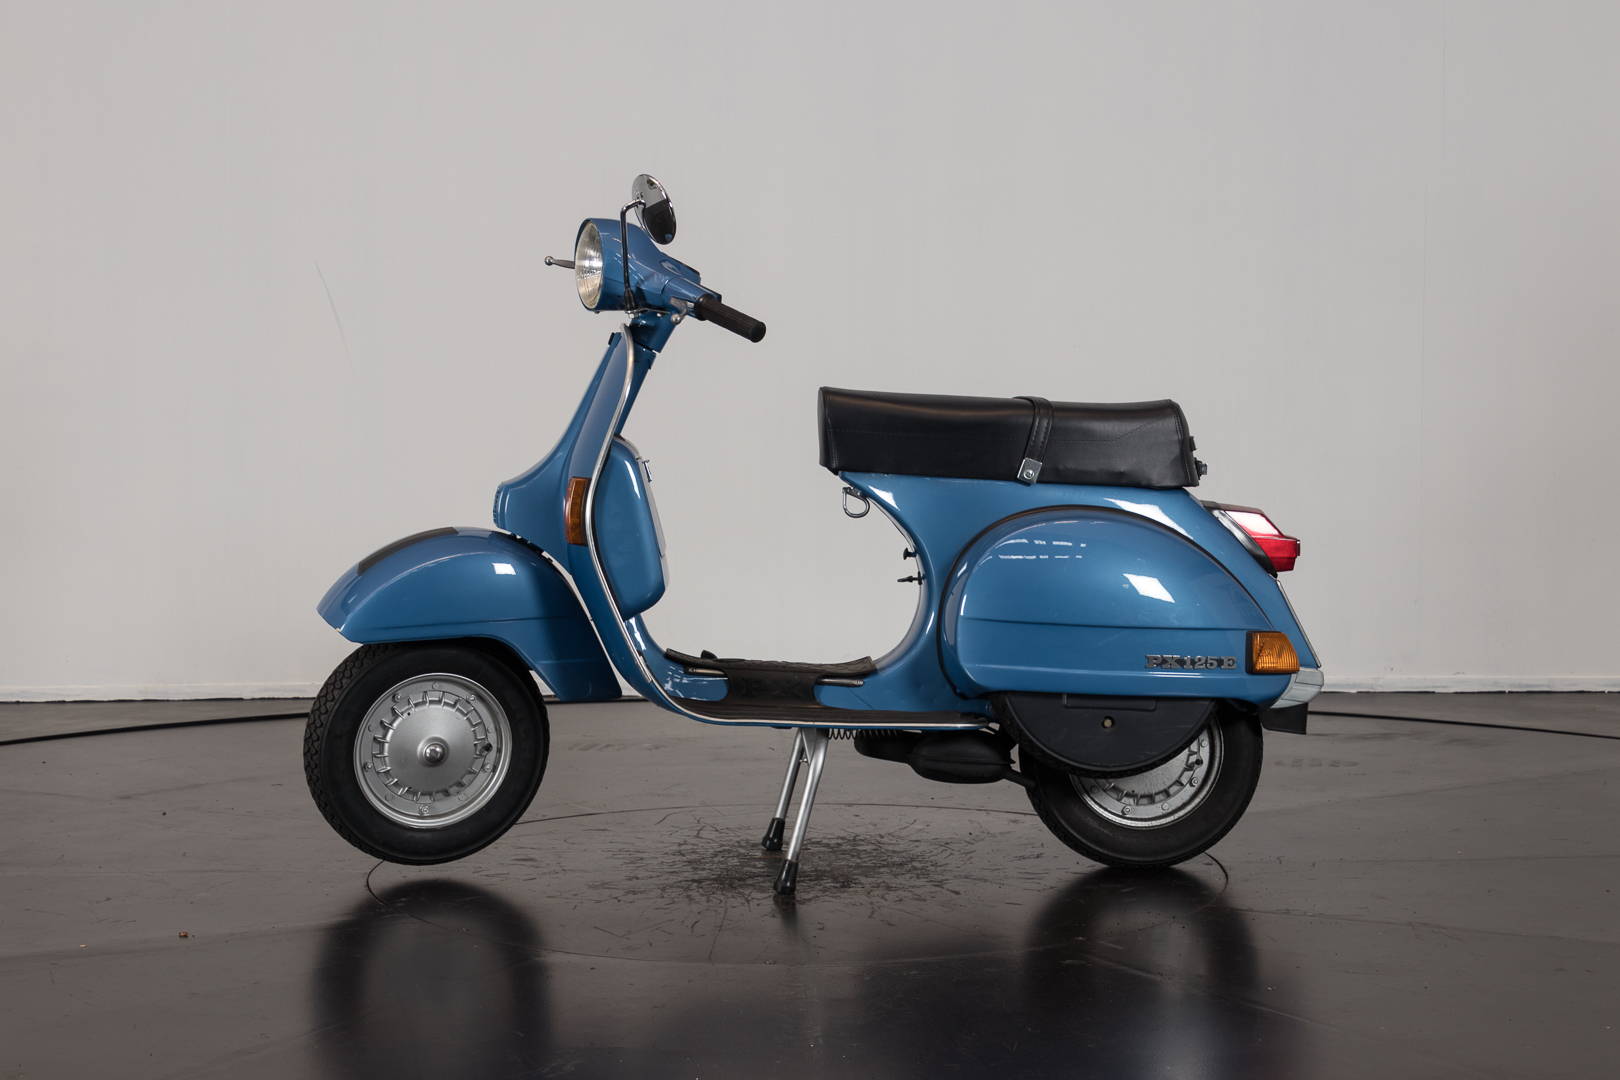 1982 piaggio vespa px 125 e piaggio moto d 39 epoca ruote da sogno. Black Bedroom Furniture Sets. Home Design Ideas